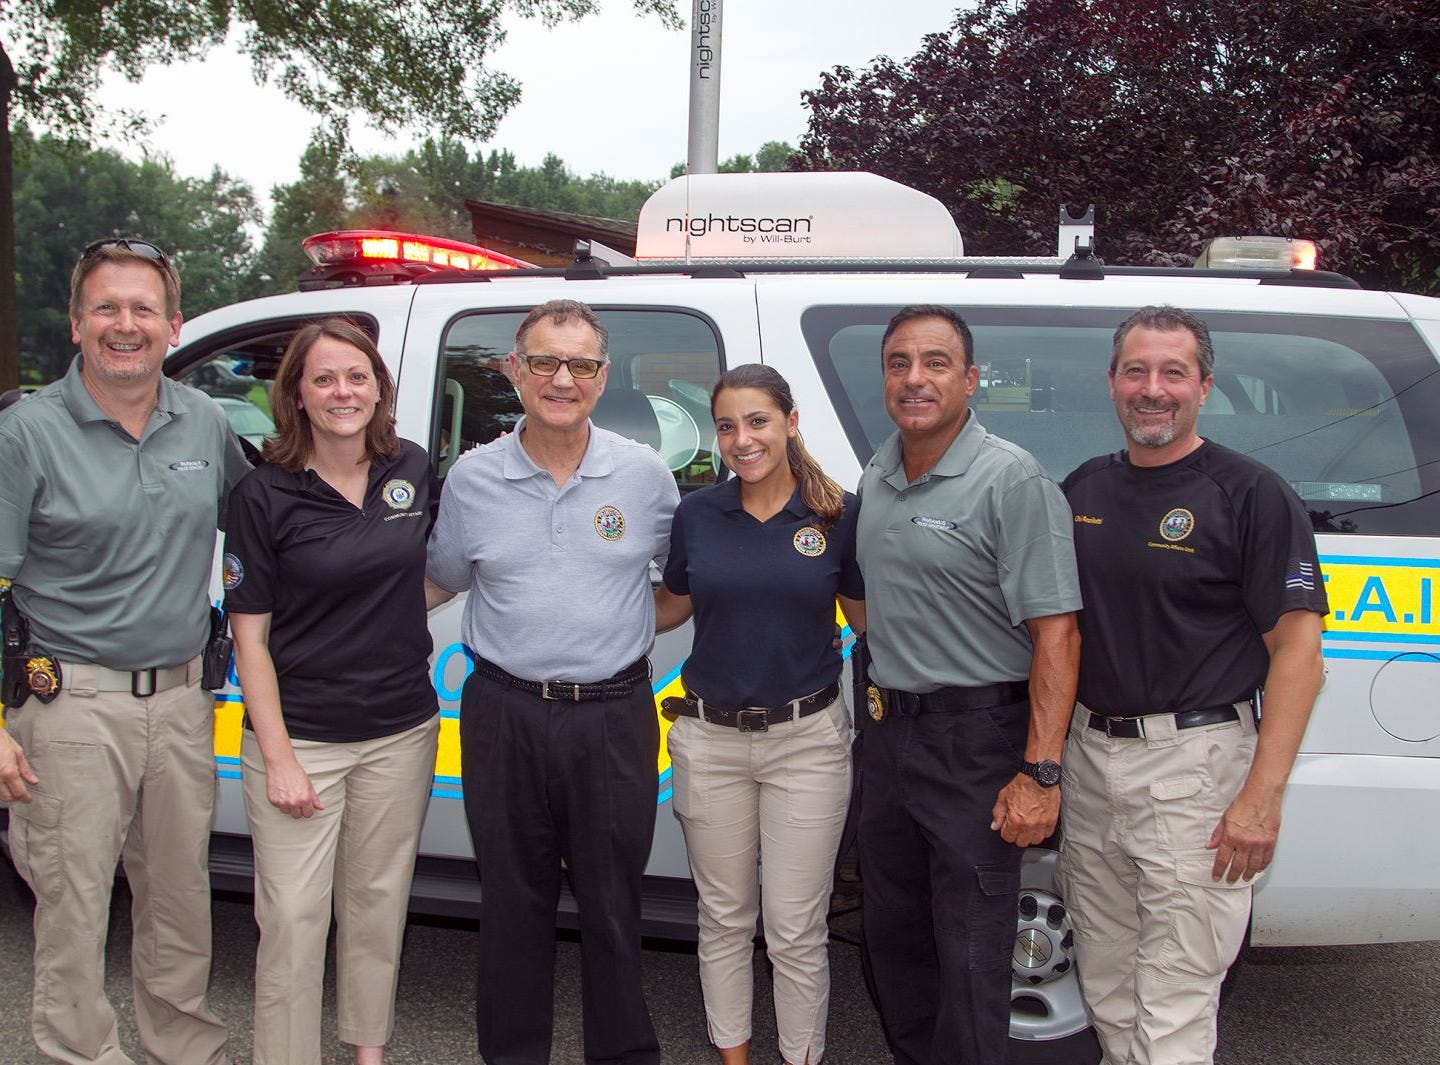 Chief of Police Kenneth R. Ehrenberg, Elizabeth Rebein, Dennis Calo, Alexa Guidetti, Deputy Chief Rob Guidetti, Robert chief of county investigators Anzilotti. Paramus National Night Out 2018 behind Paramus Library. 08/07/2018